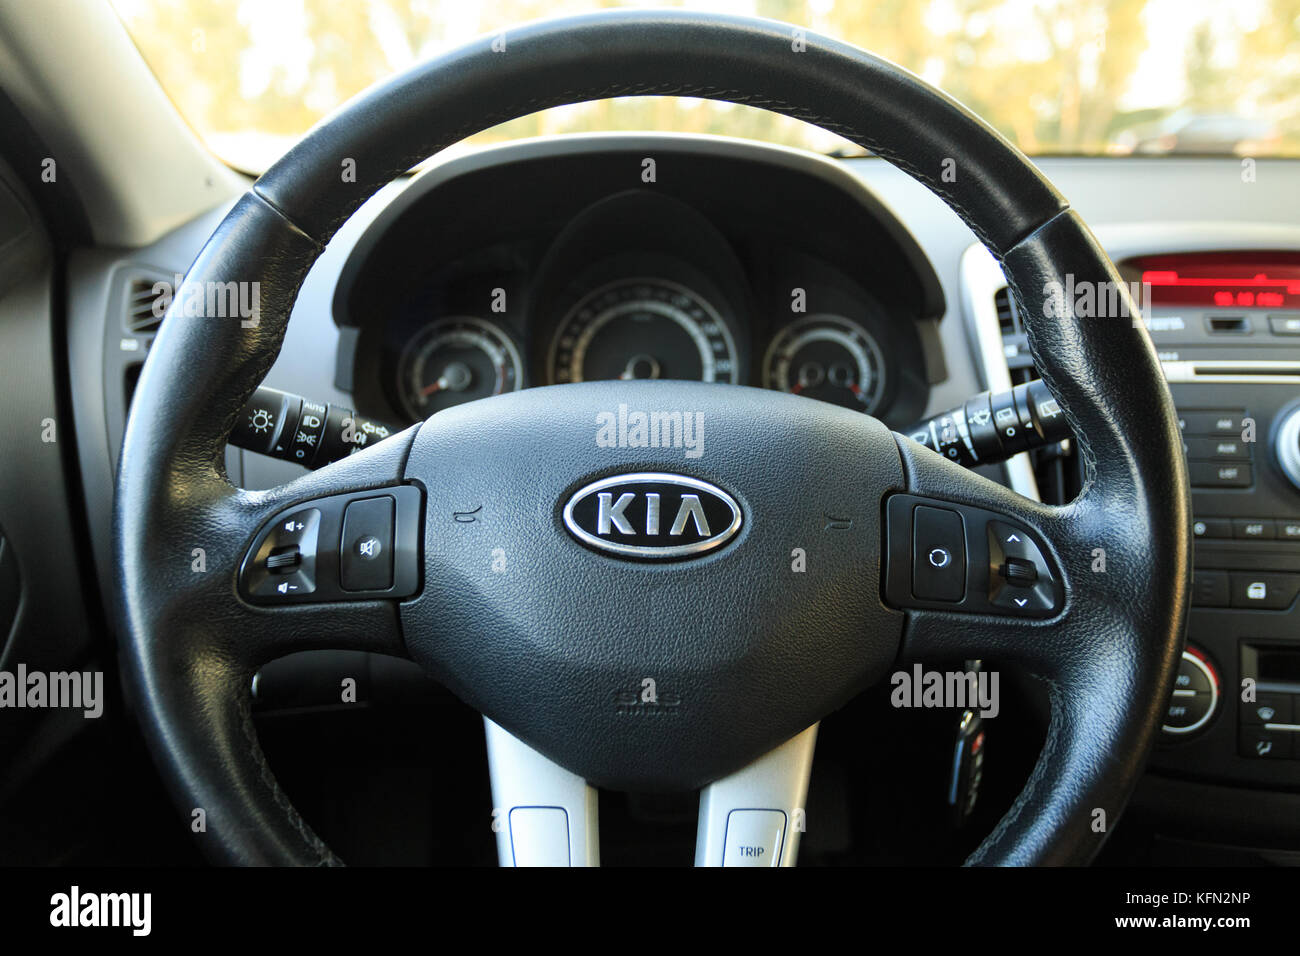 DNIPRO, UKRAINE - September 05, 2017: Kia Ceed, Interieur, RAD CLOSE ...